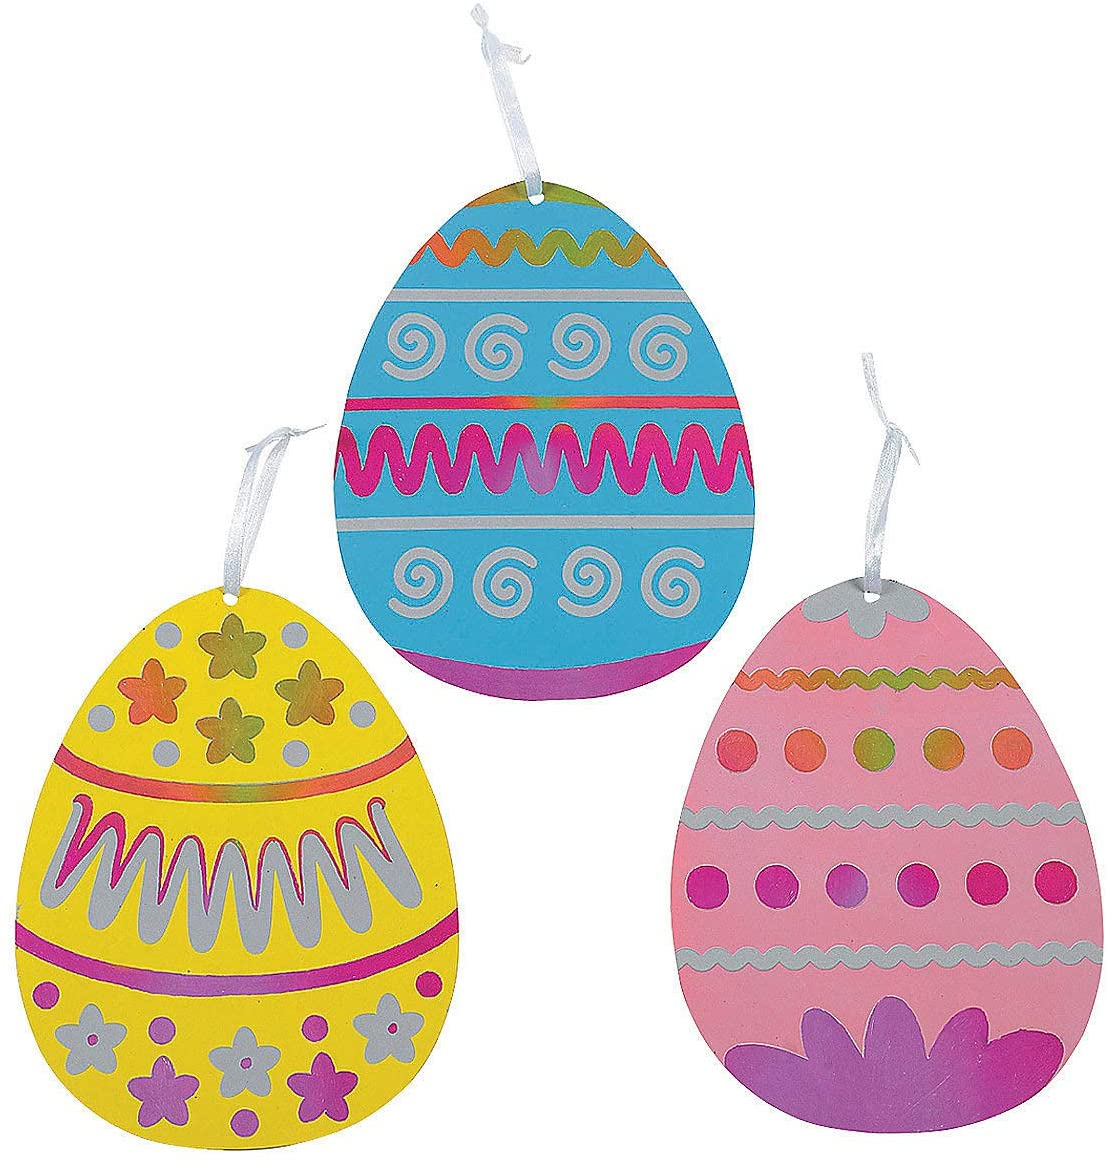 Magic Scratch Jumbo Easter Eggs (1Dz) - Crafts for Kids and Fun Home Activities